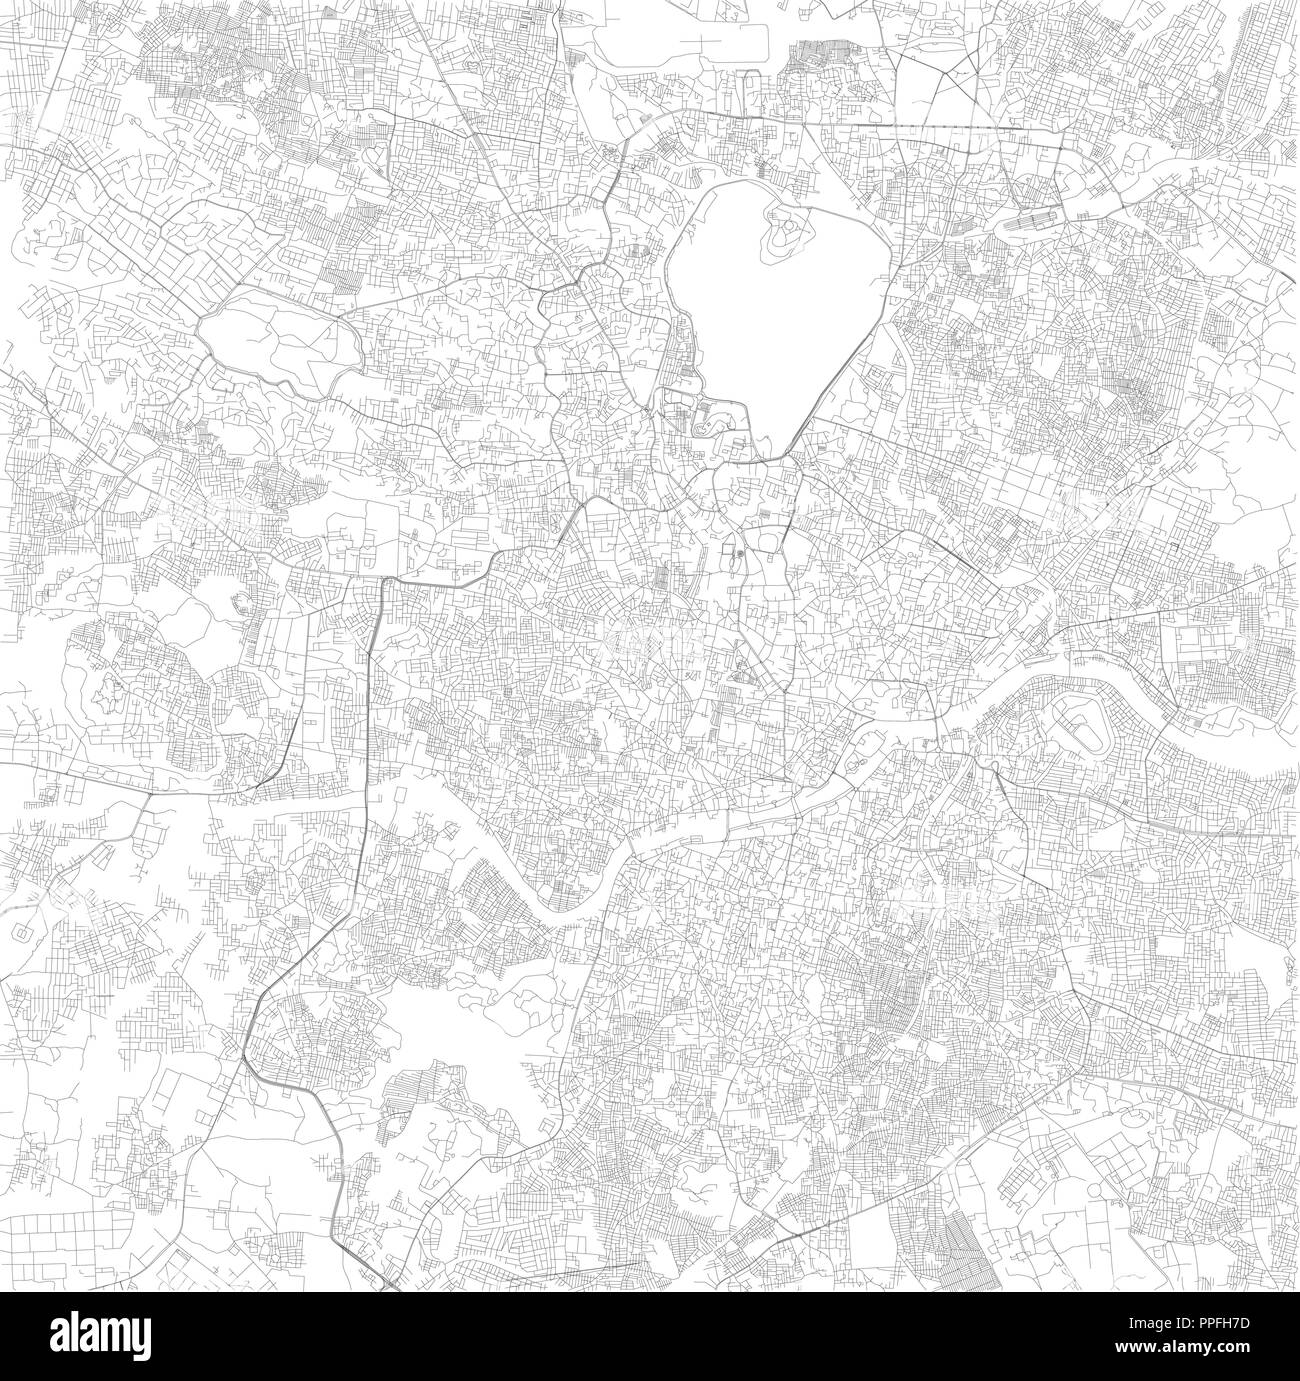 Hyderabad Black and White Stock Photos & Images - Alamy